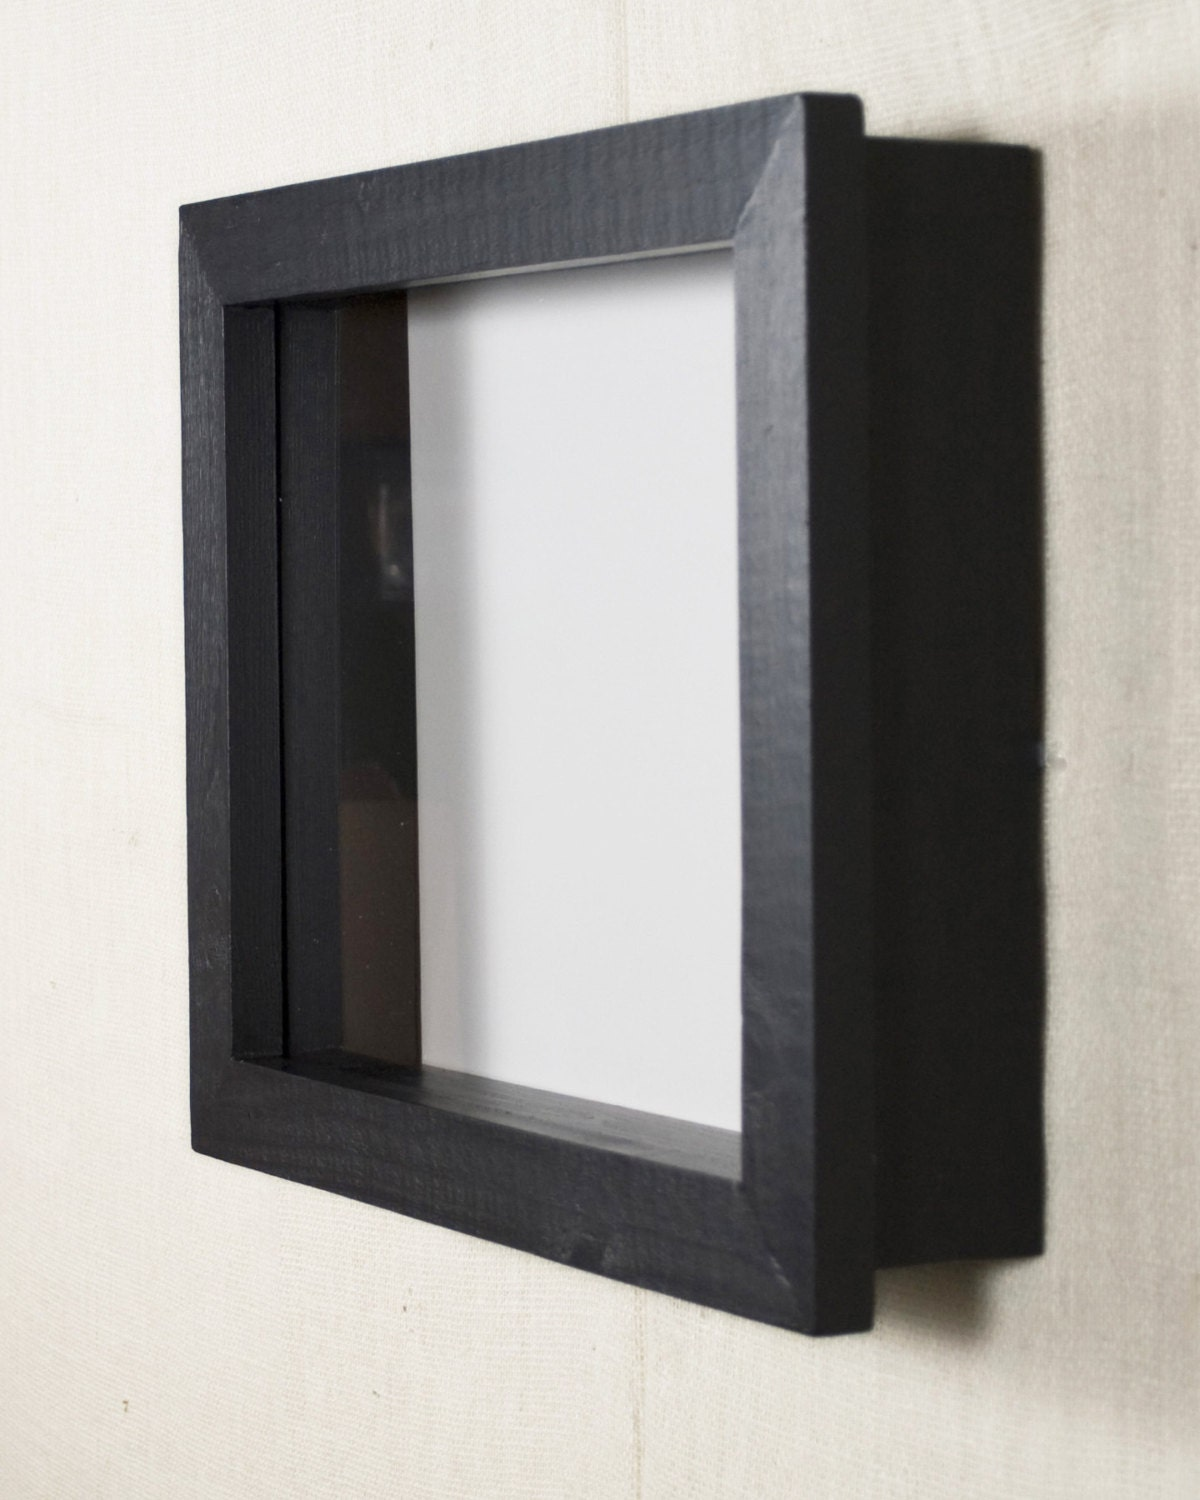 11x14 shadow box frame extra deep shadow box 6 by emilyanothercup. Black Bedroom Furniture Sets. Home Design Ideas